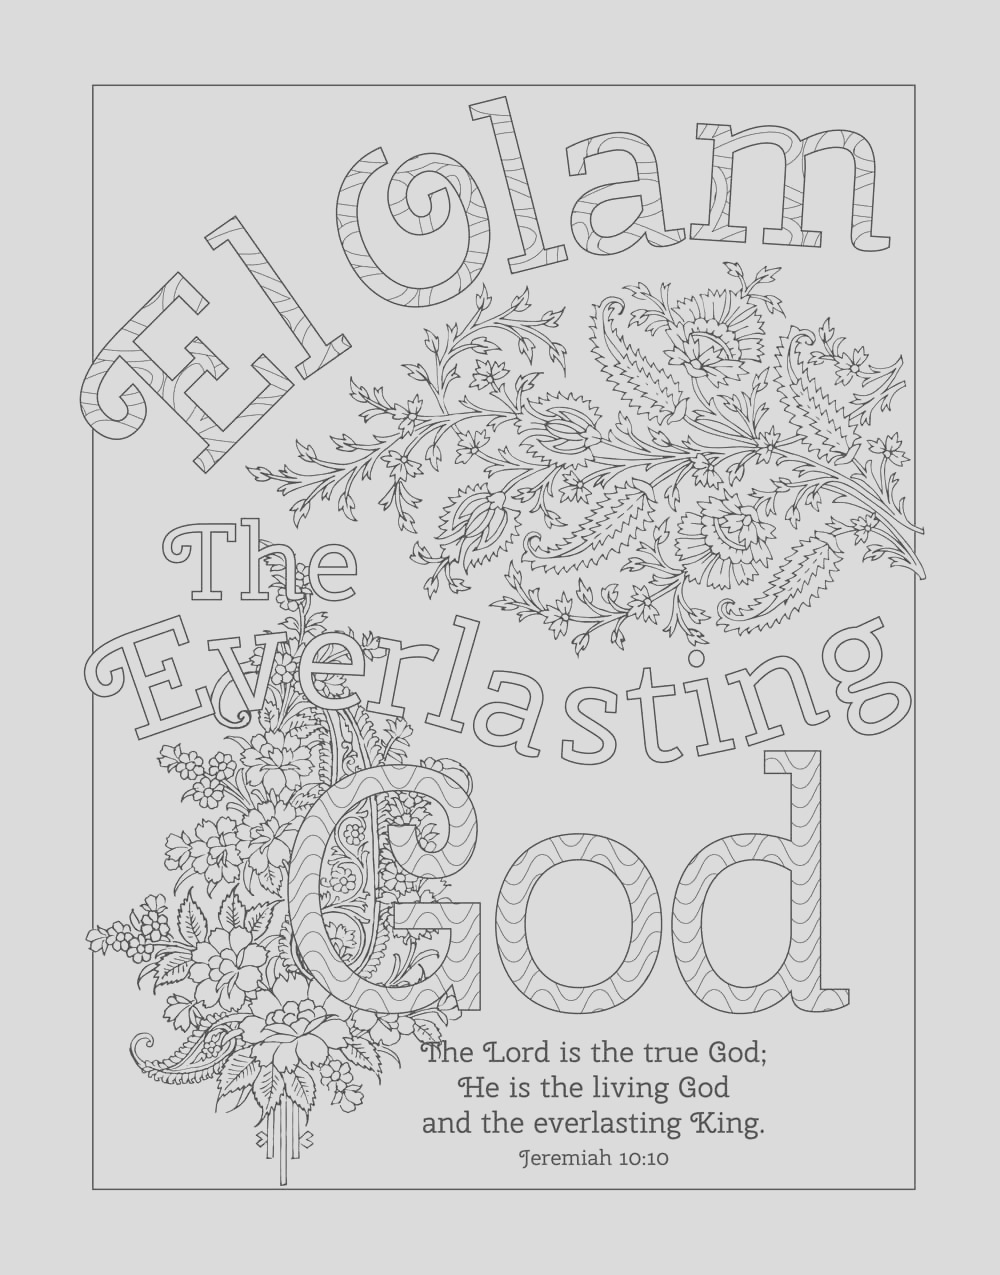 attributes of god page sketch templates